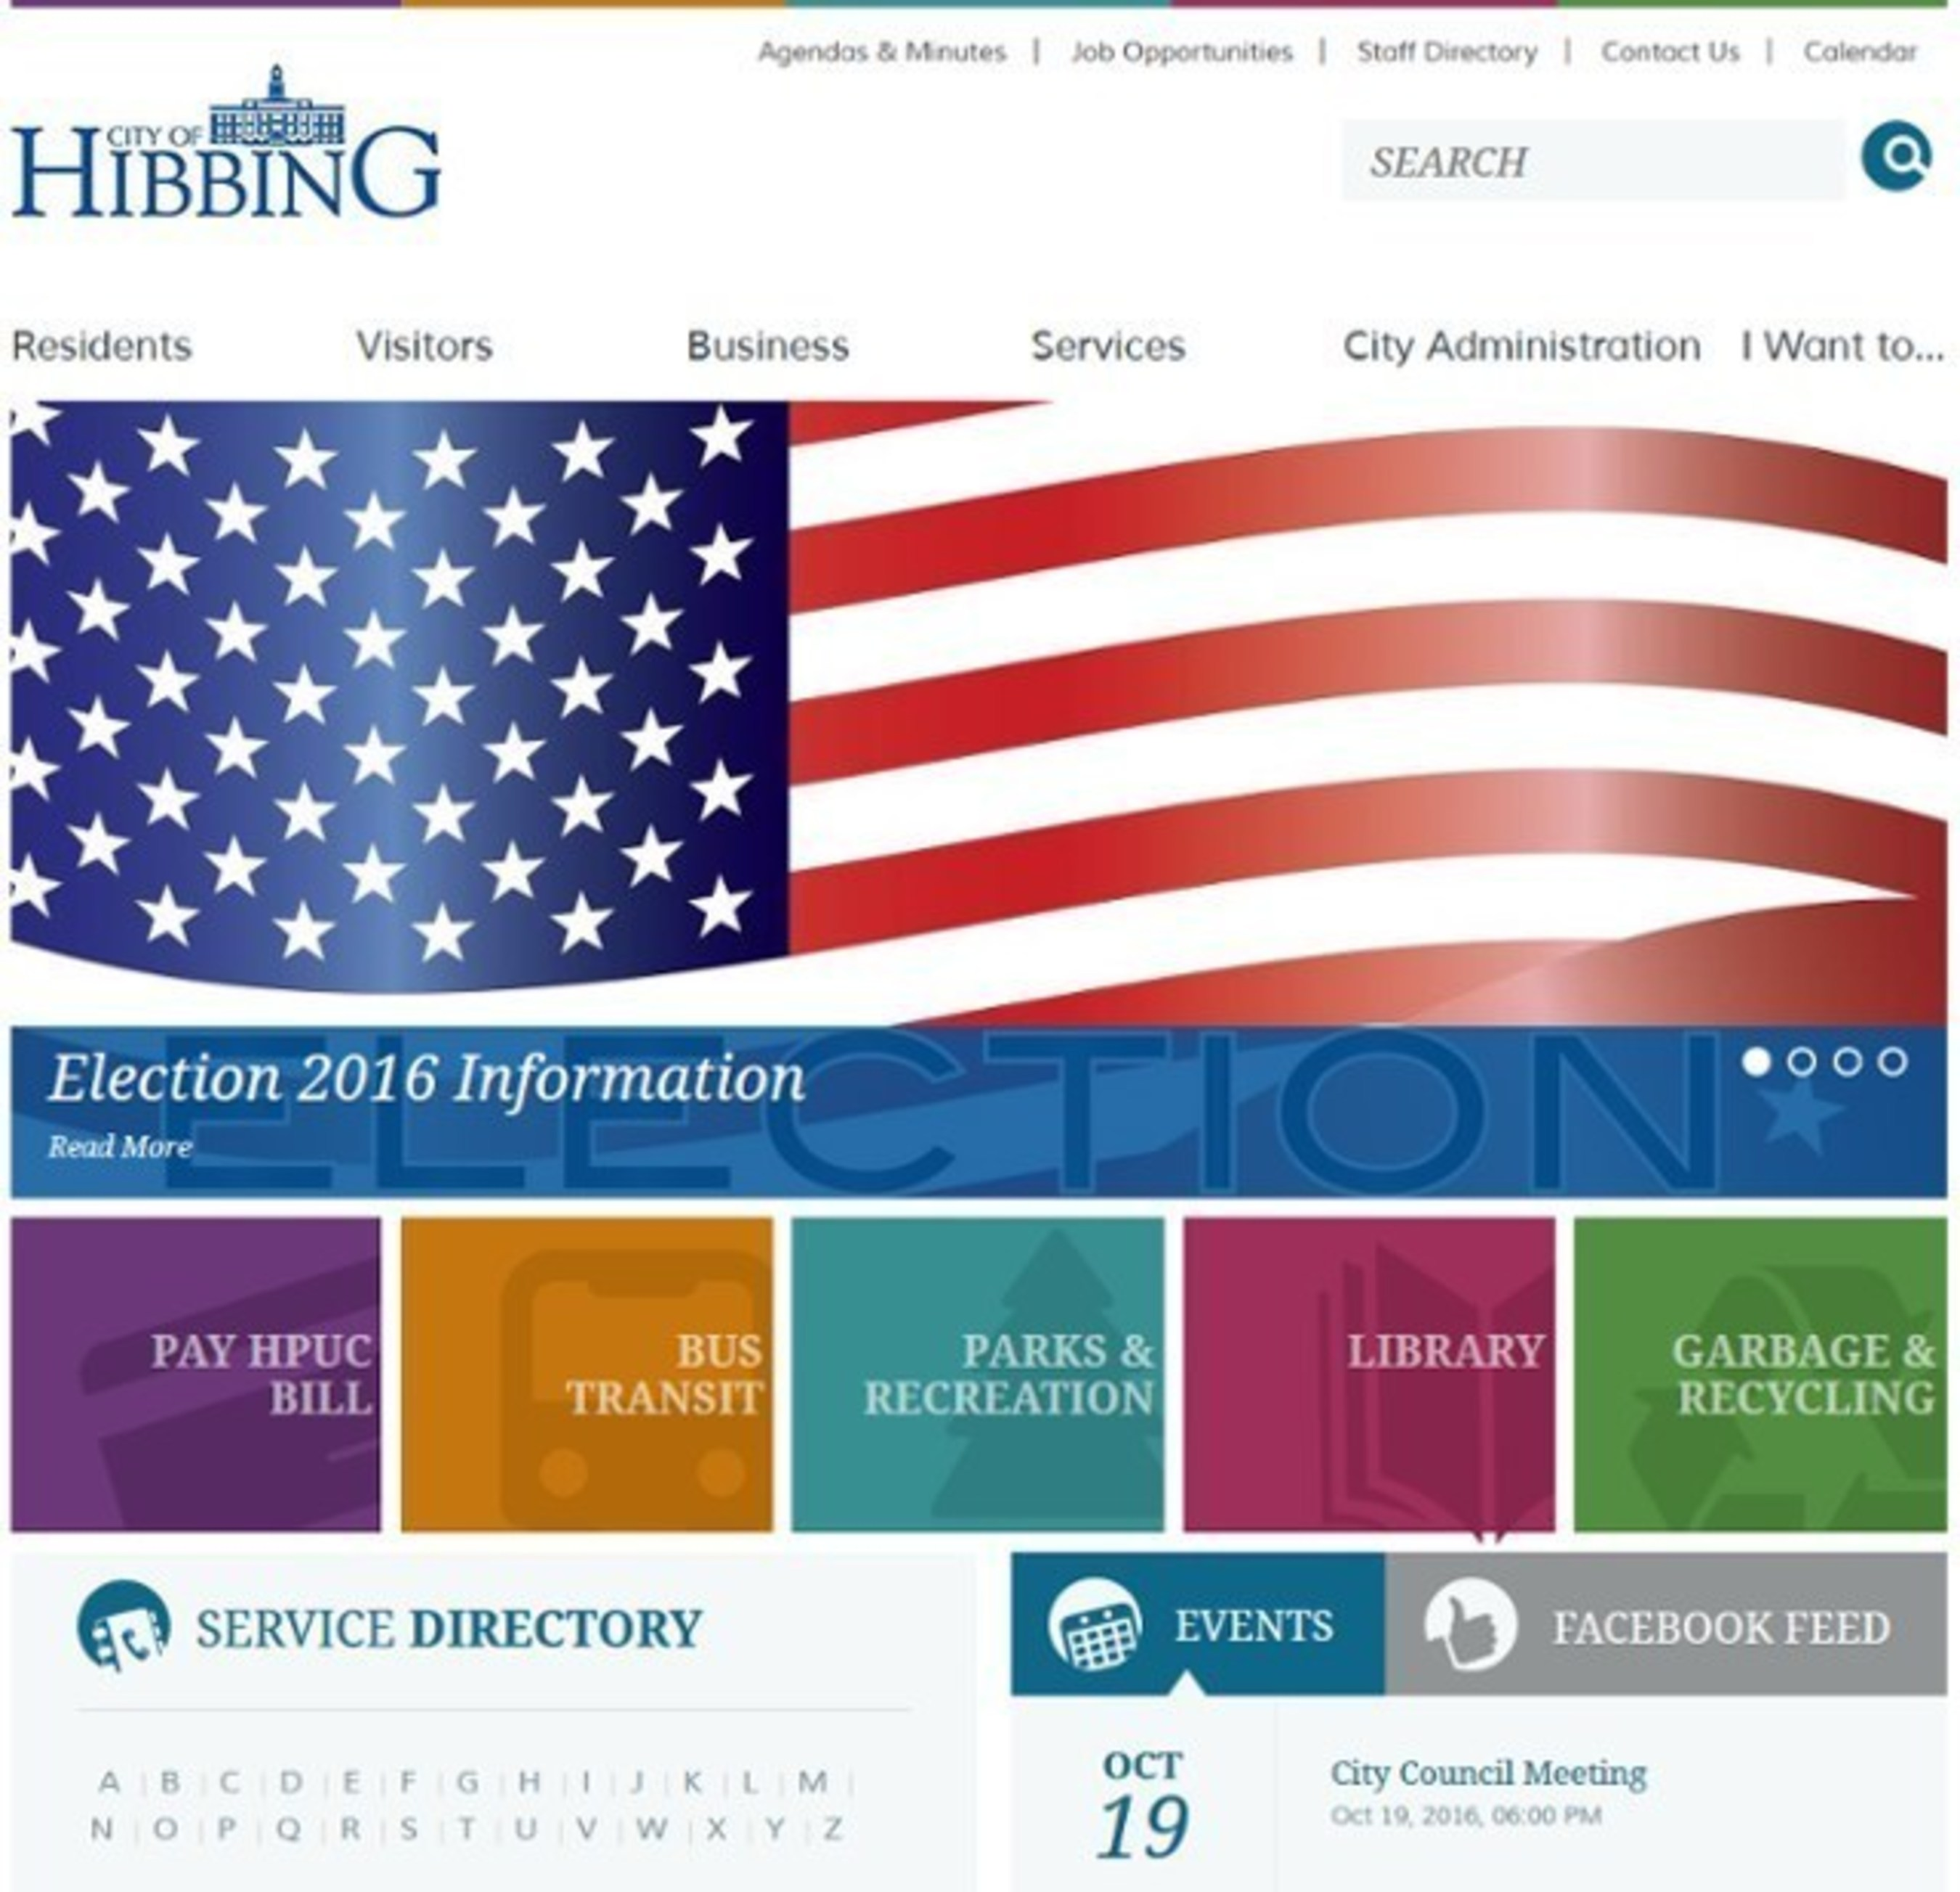 The City of Hibbing, Minnesota is one of many Vision clients using its municipal website to keep voters in the know this election year. Voter information is easy to find and available 24/7.